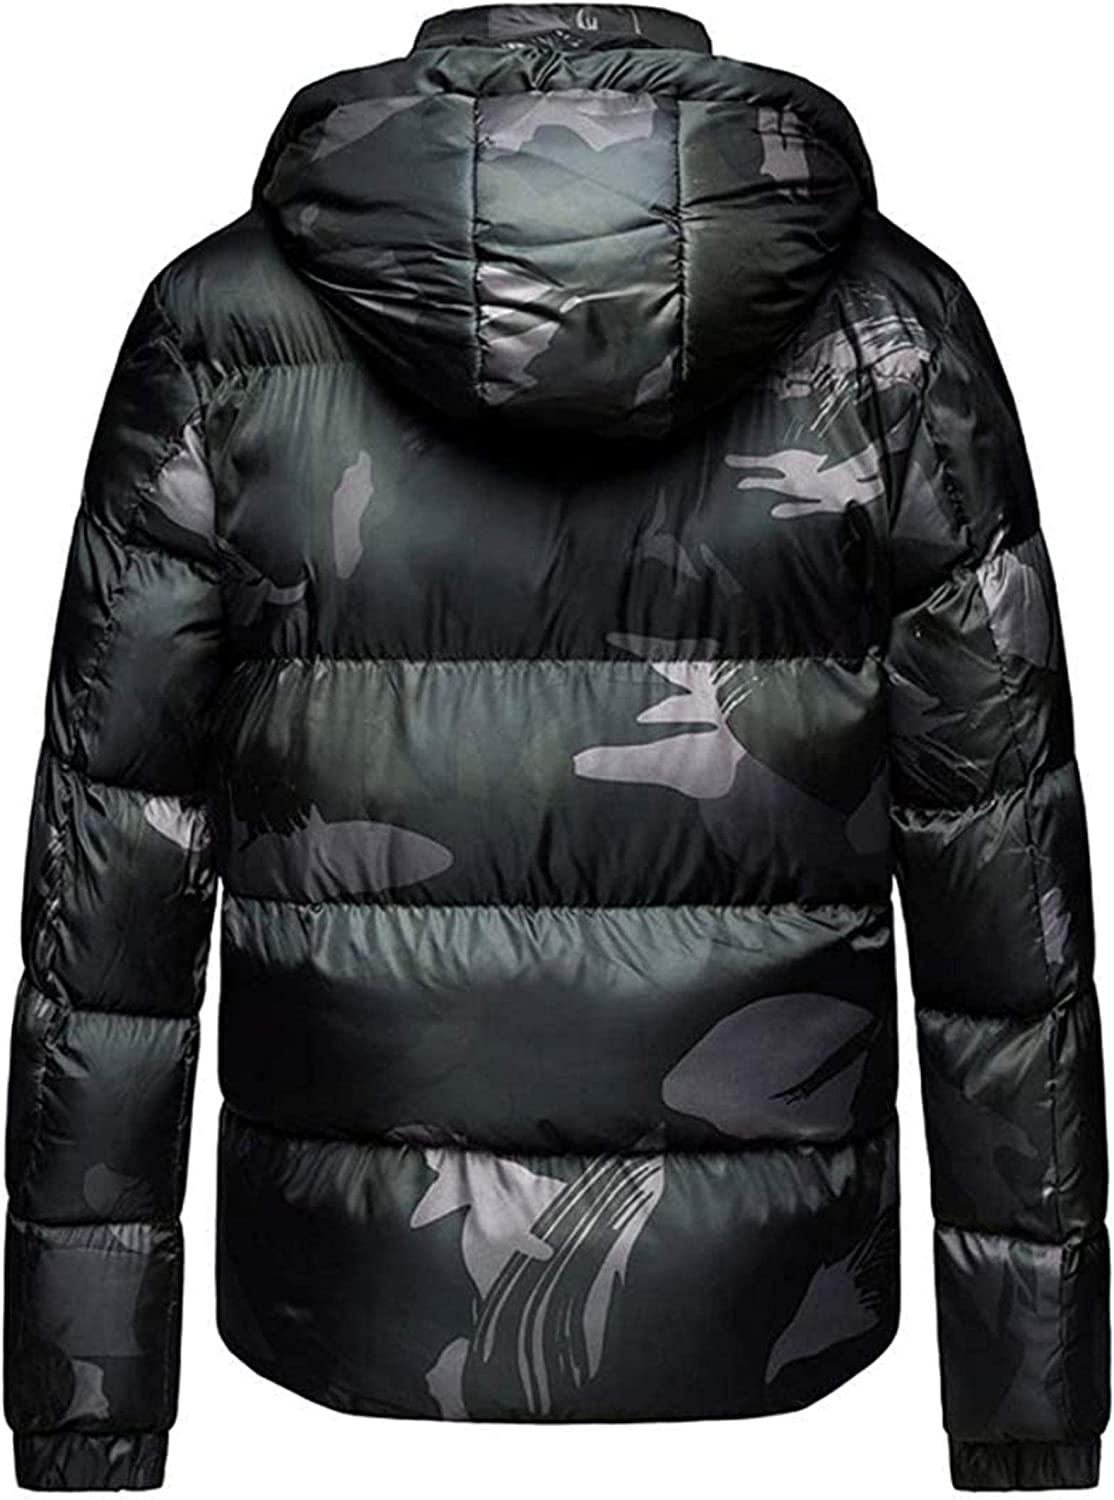 Men's Camo Printed Hooded Insulated Puffy Down Alternative Parka Jacket